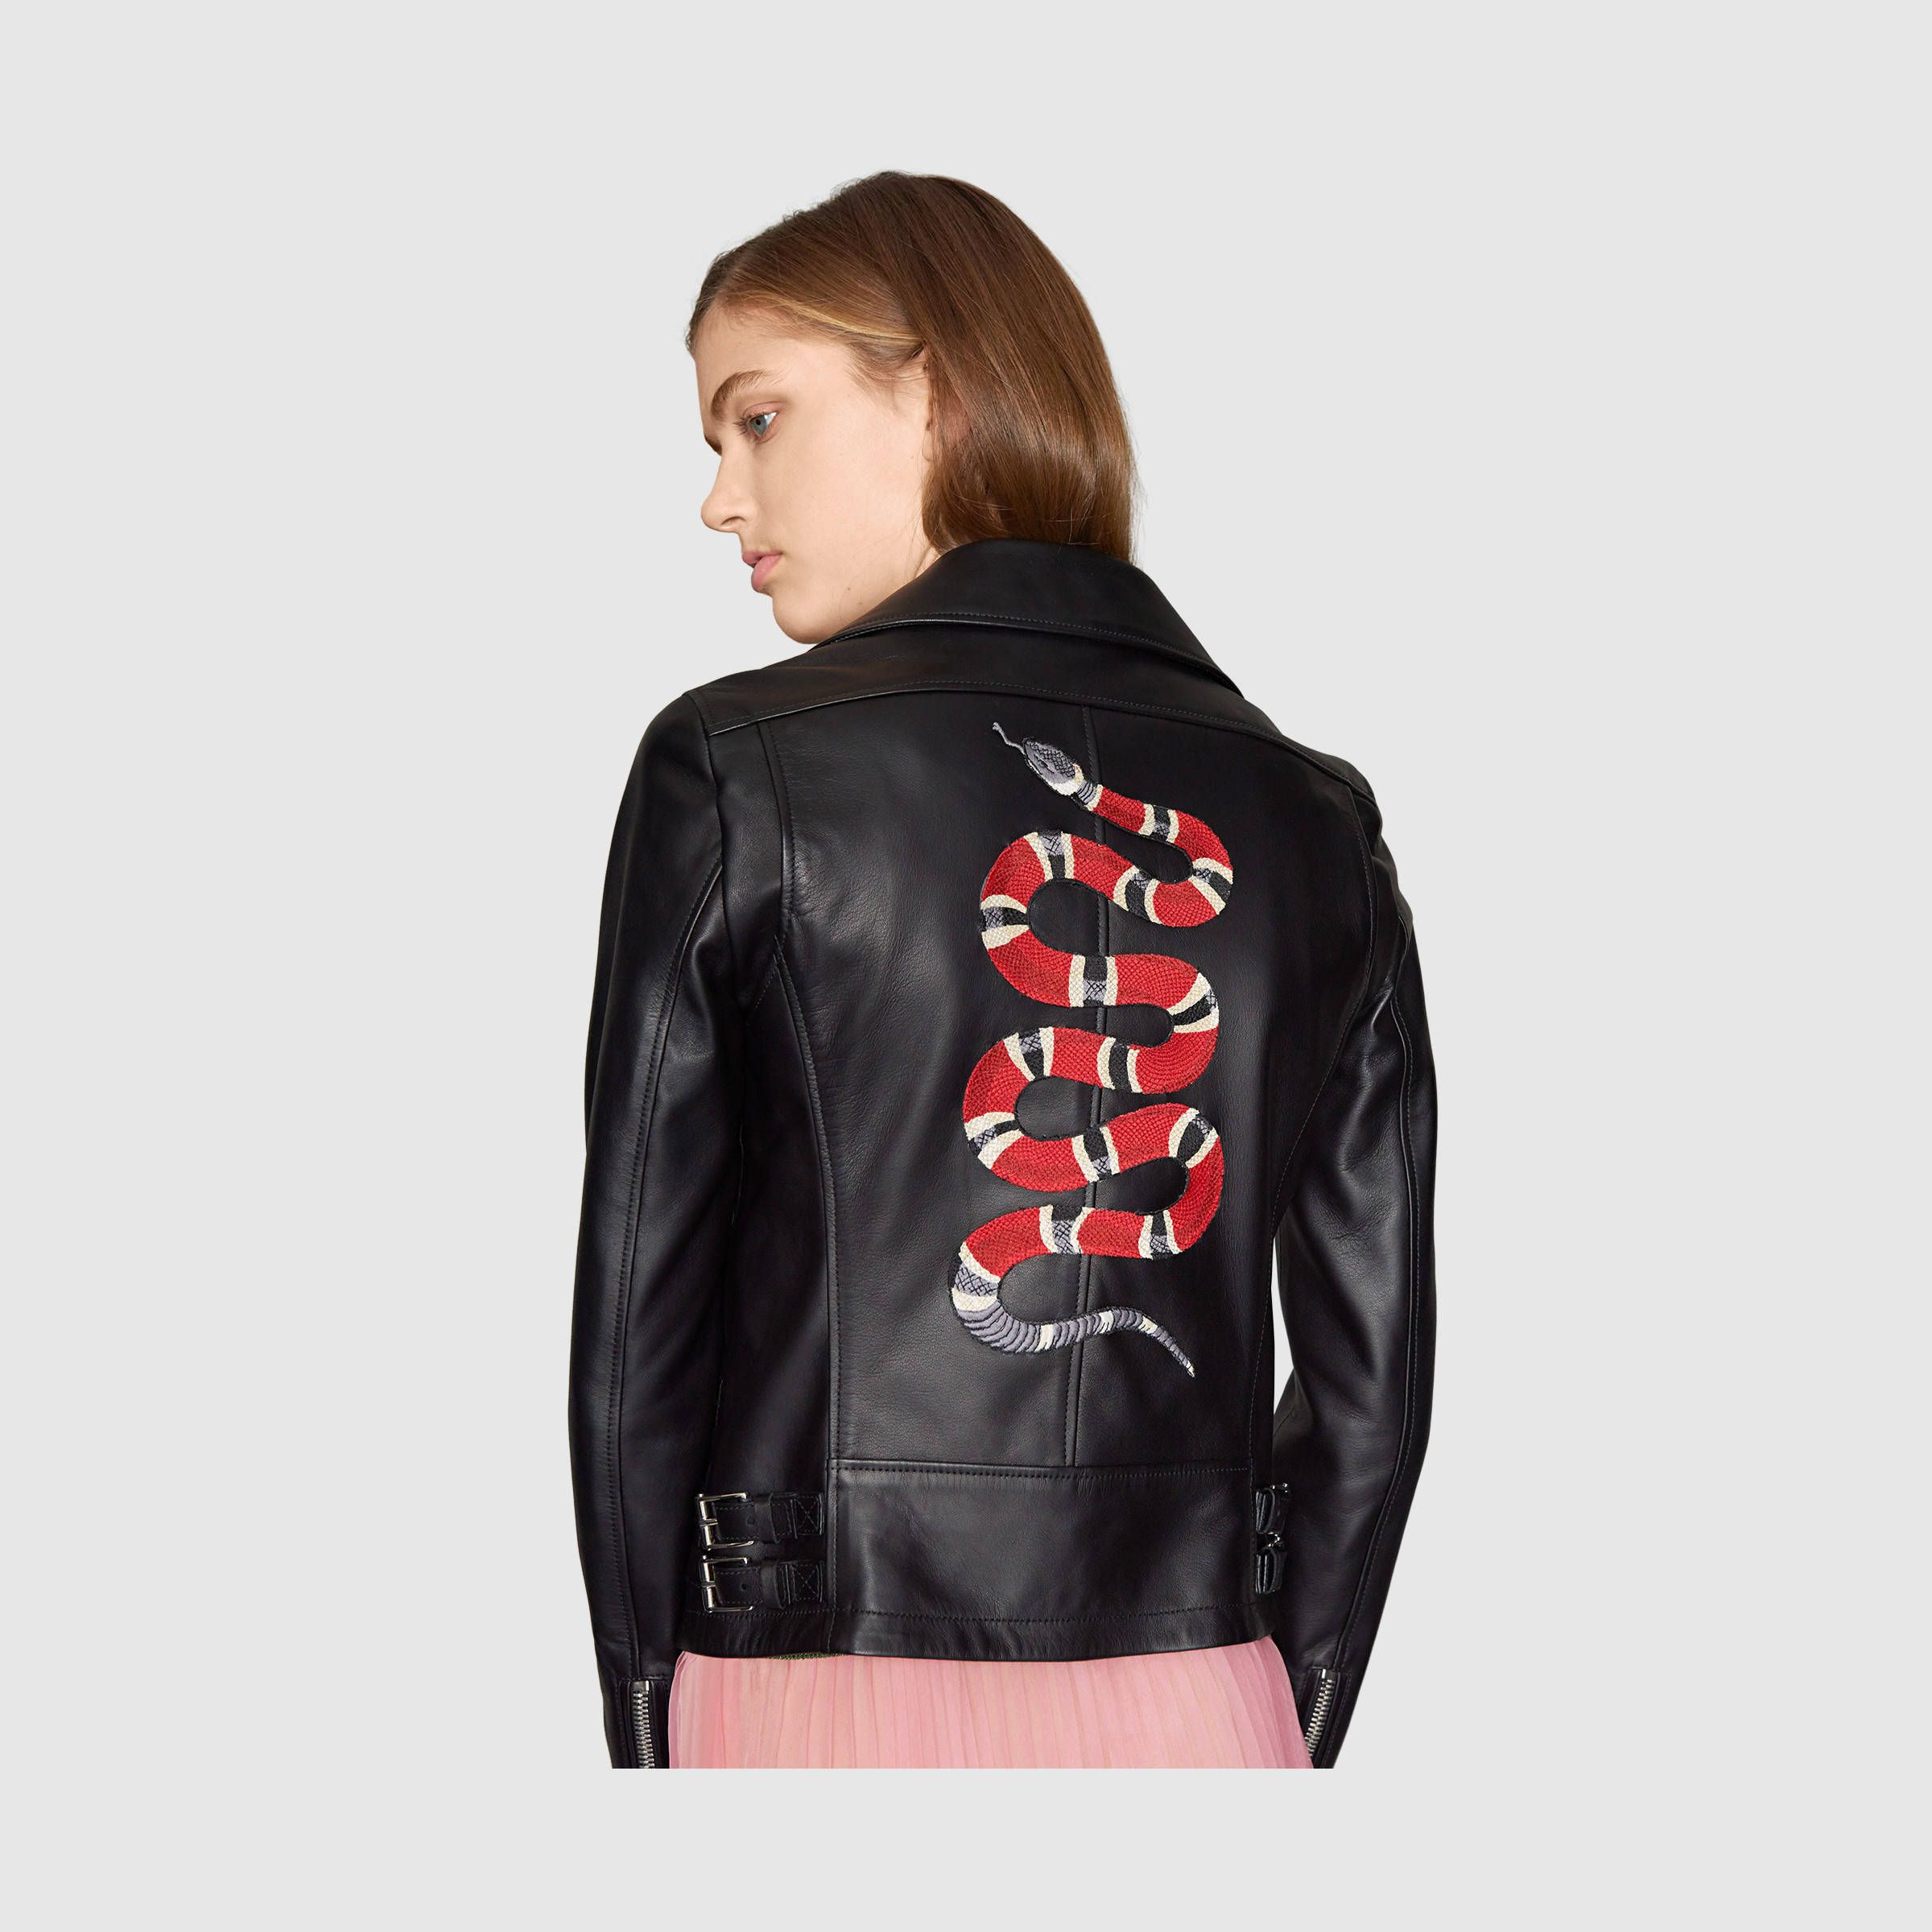 Leather jacket with appliqués by Gucci. A black leather